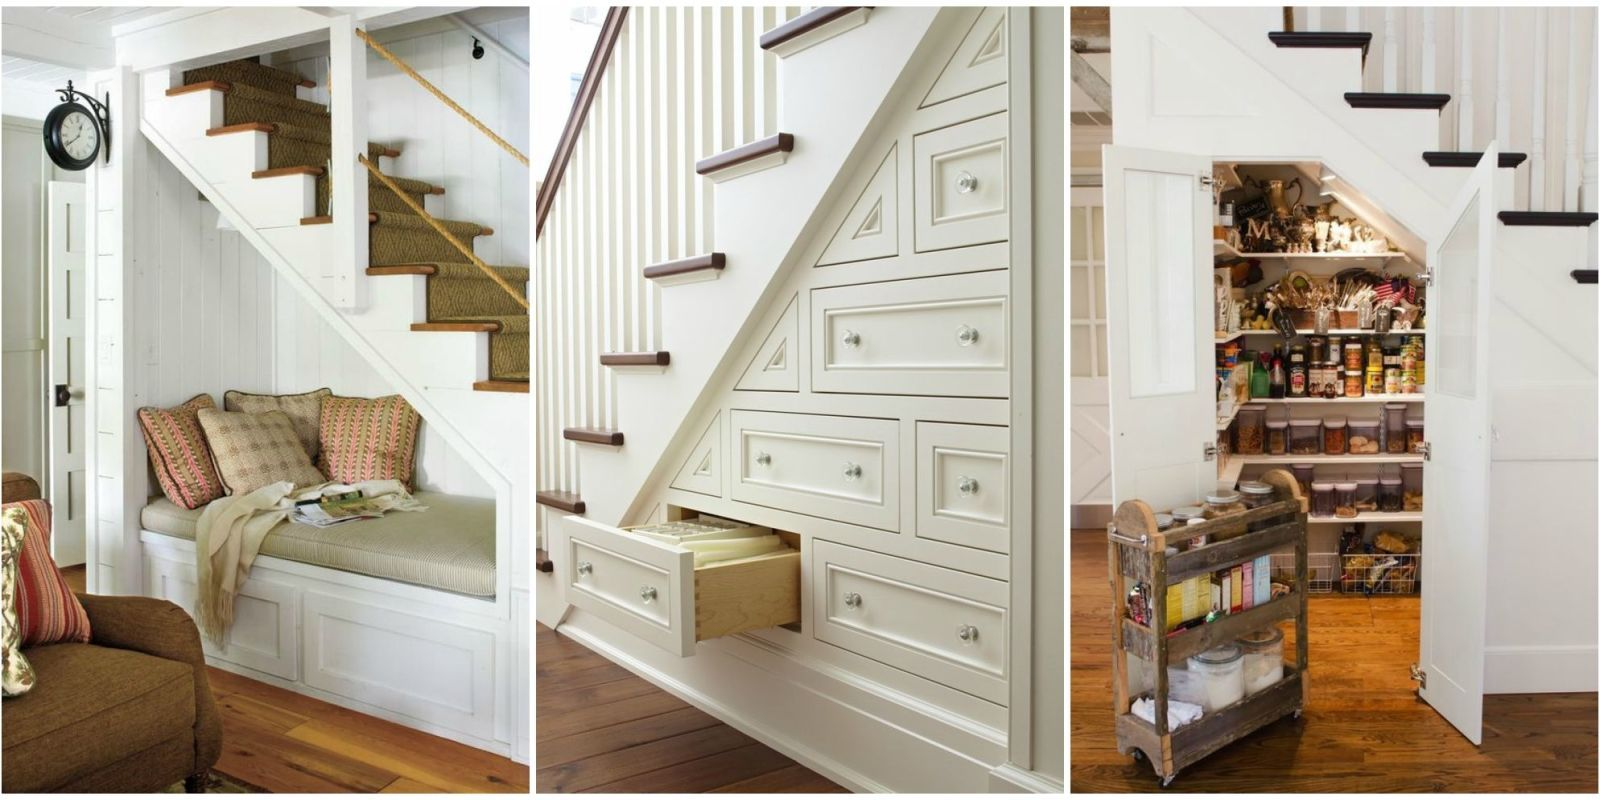 Wondering If Thereu0027s A Way To Make Use Of That Empty Space Under Your  Staircase? You Can Transform This Overlooked Area Into A Place For Your Pet  To Snooze, ...